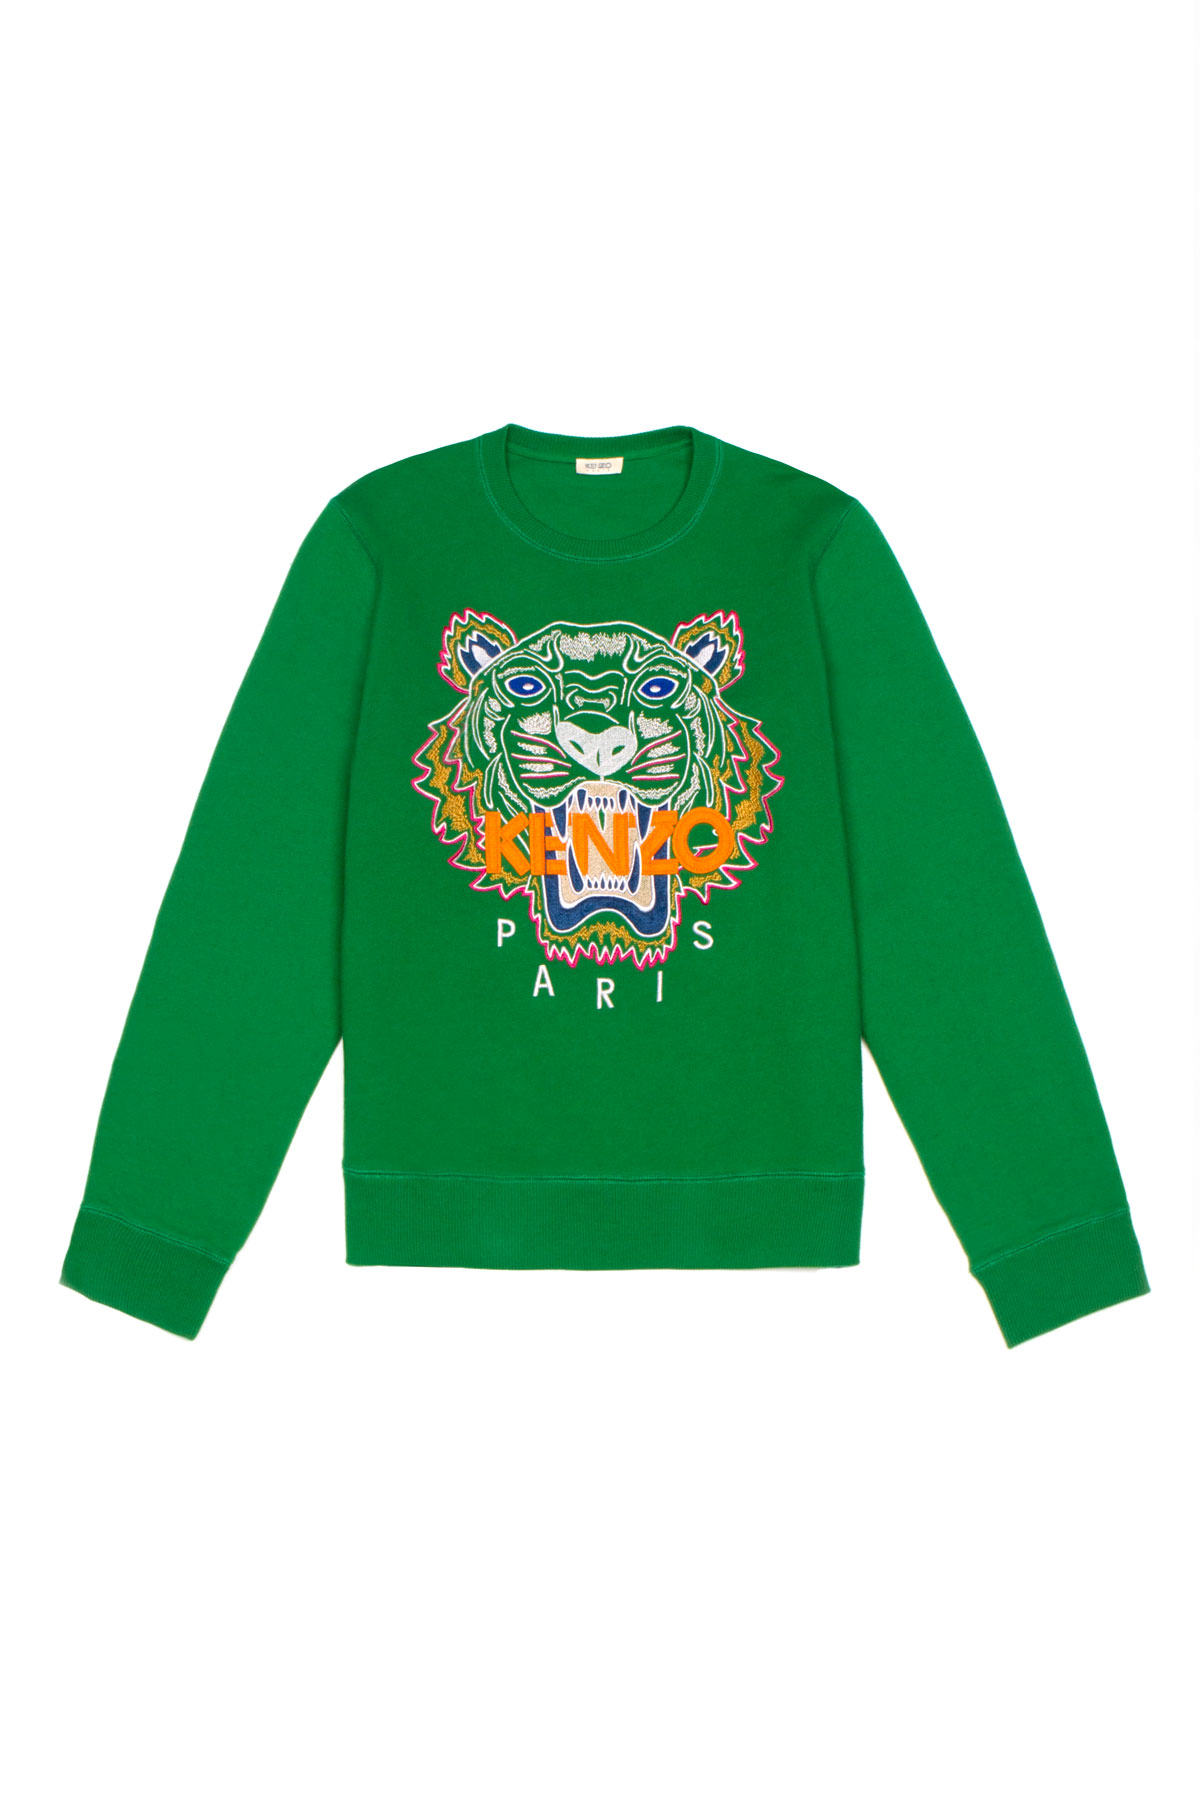 KENZO TIGER EMBROIDERY SWEATER - WOMEN - KENZO - OPENING CEREMONY